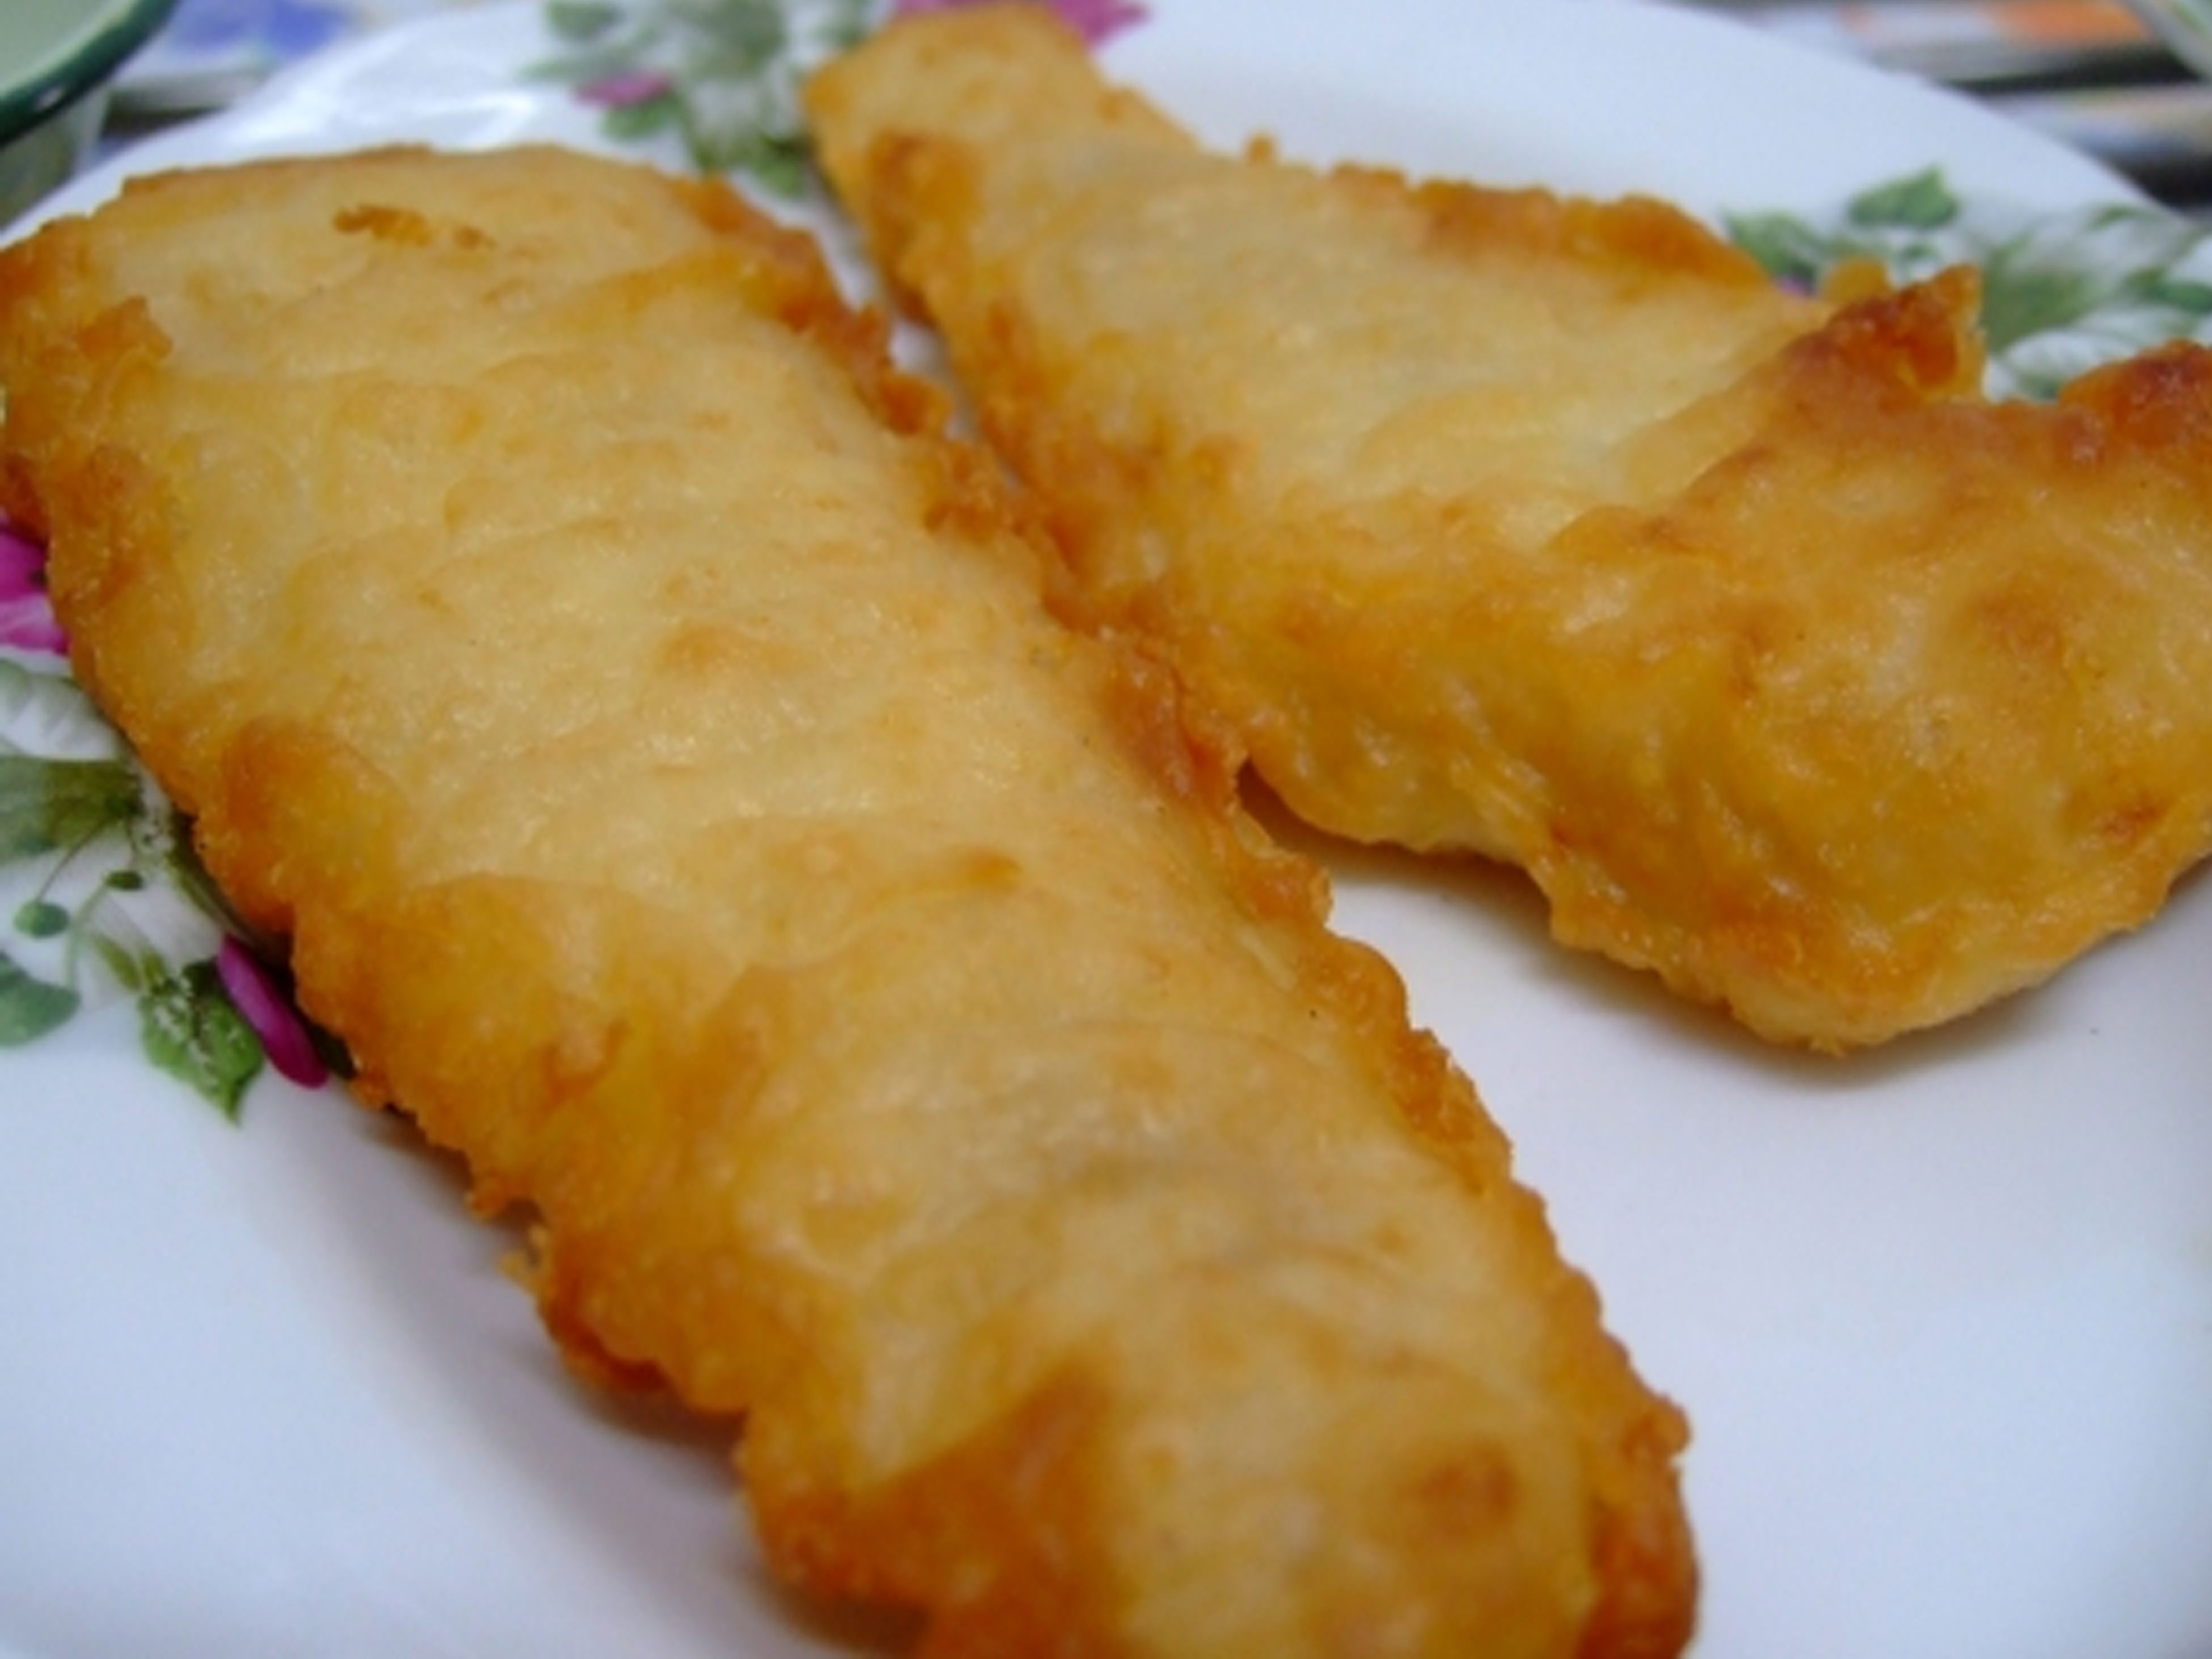 Image gallery orange fish fillet for How to fry fish fillet